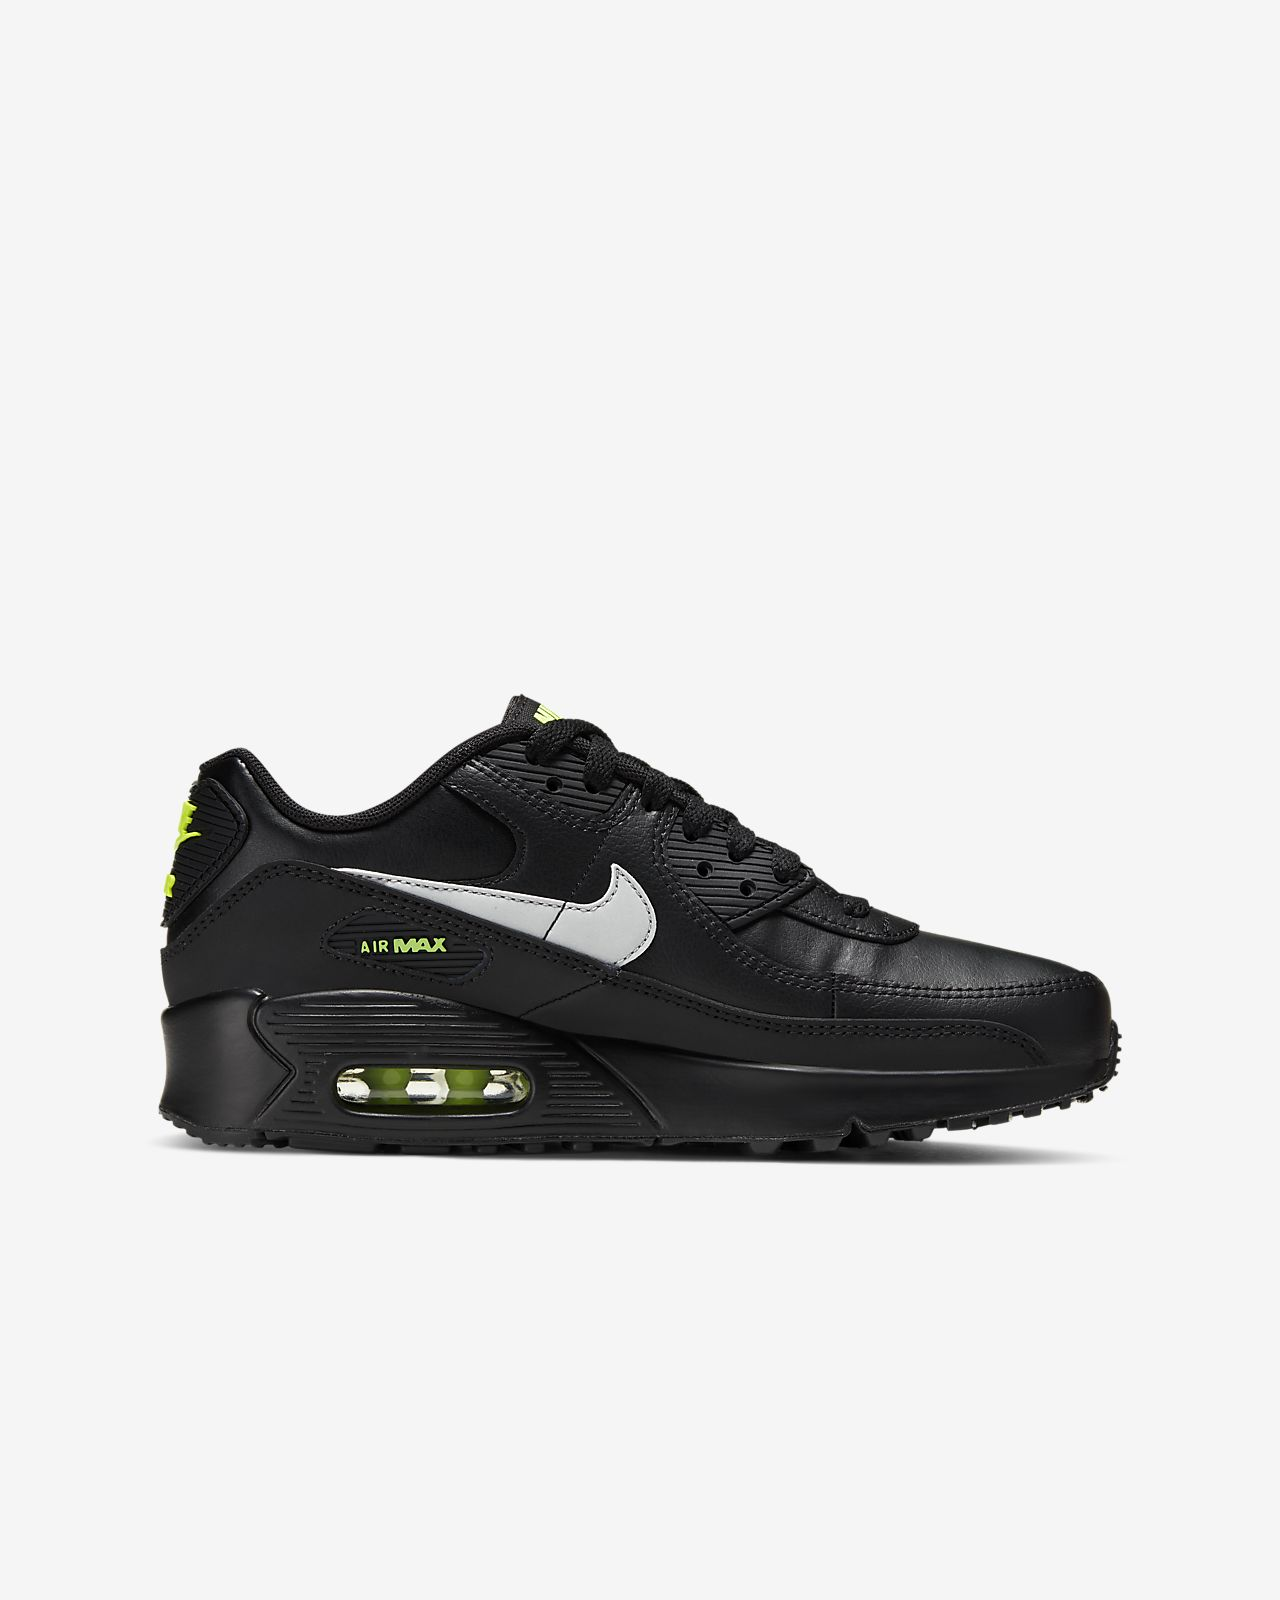 t.buty nike air max 90 leather